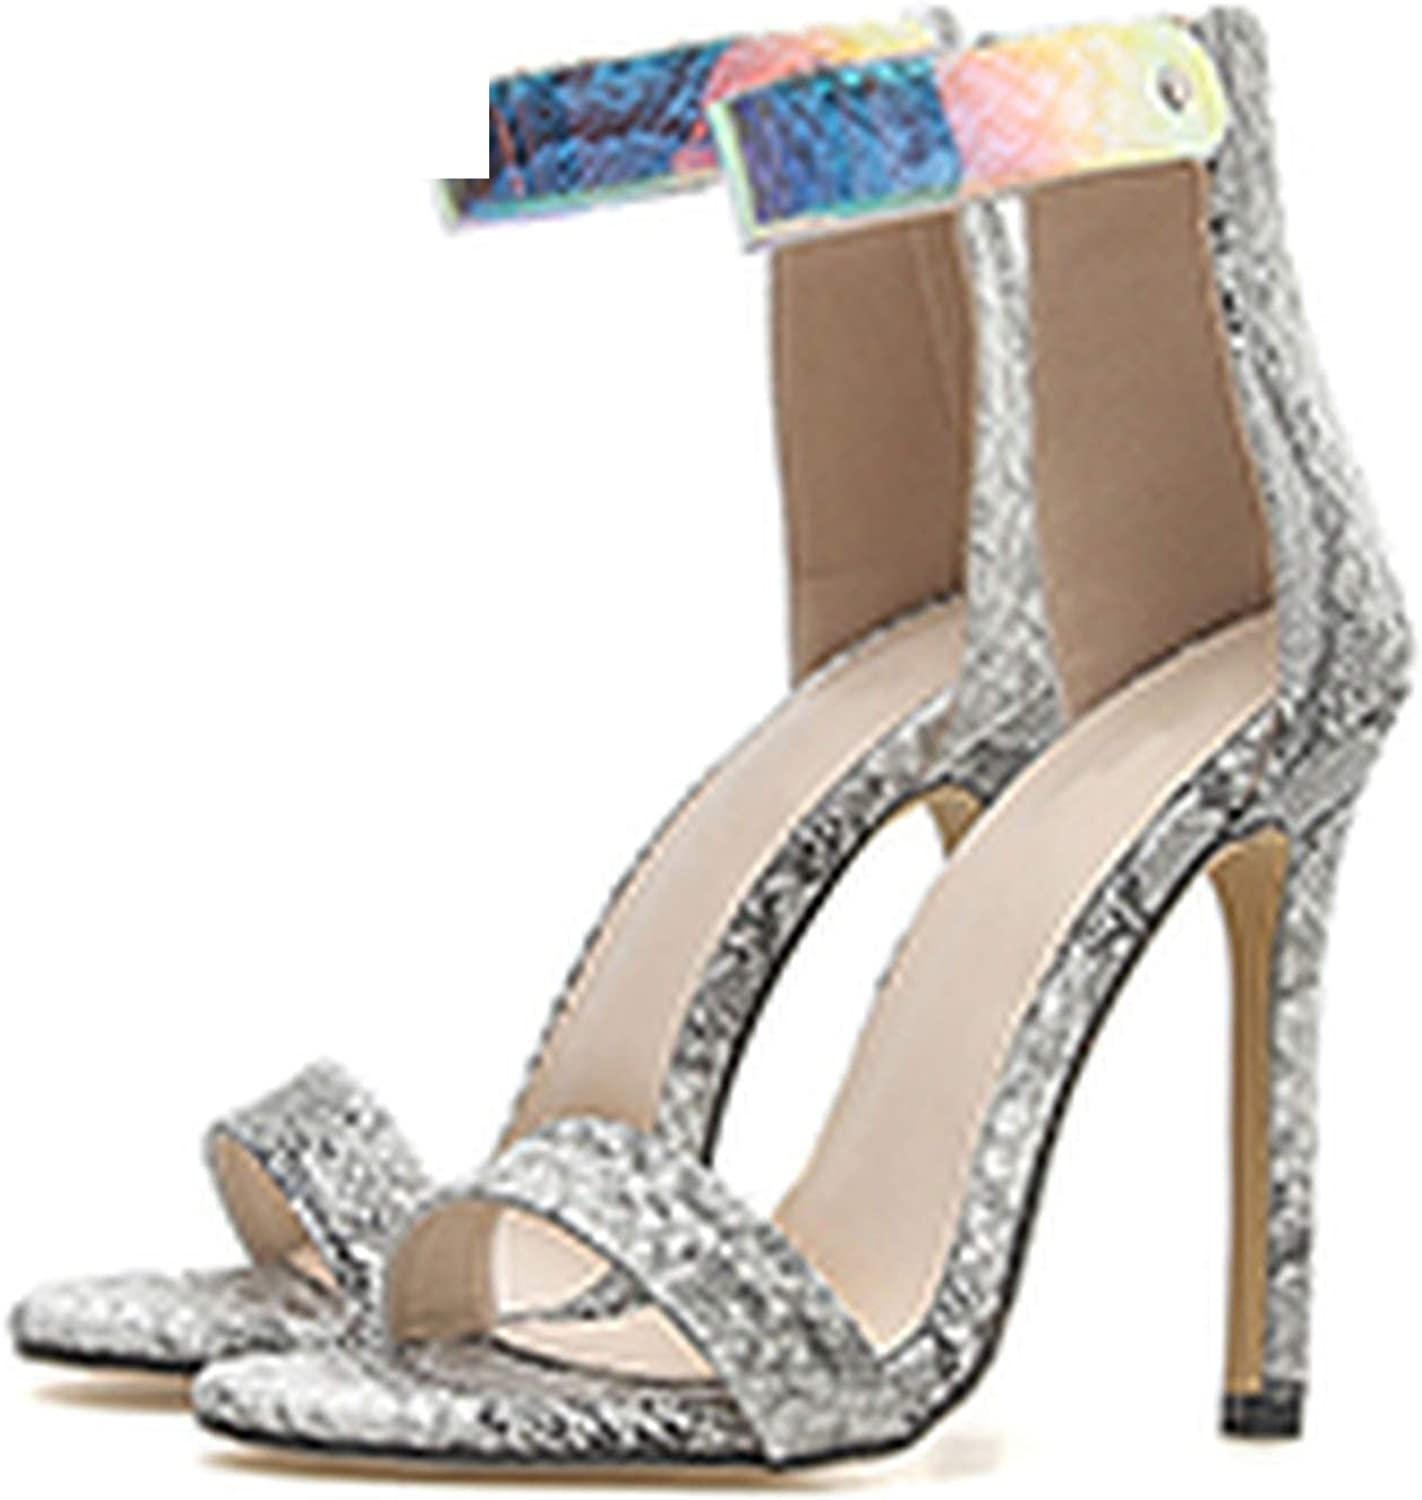 Ches Sexy Women High Heel Sandals Ankle Strap Peep Toe Print Snakeskin shoes Woman Club Footwear Sandals Size 35-40